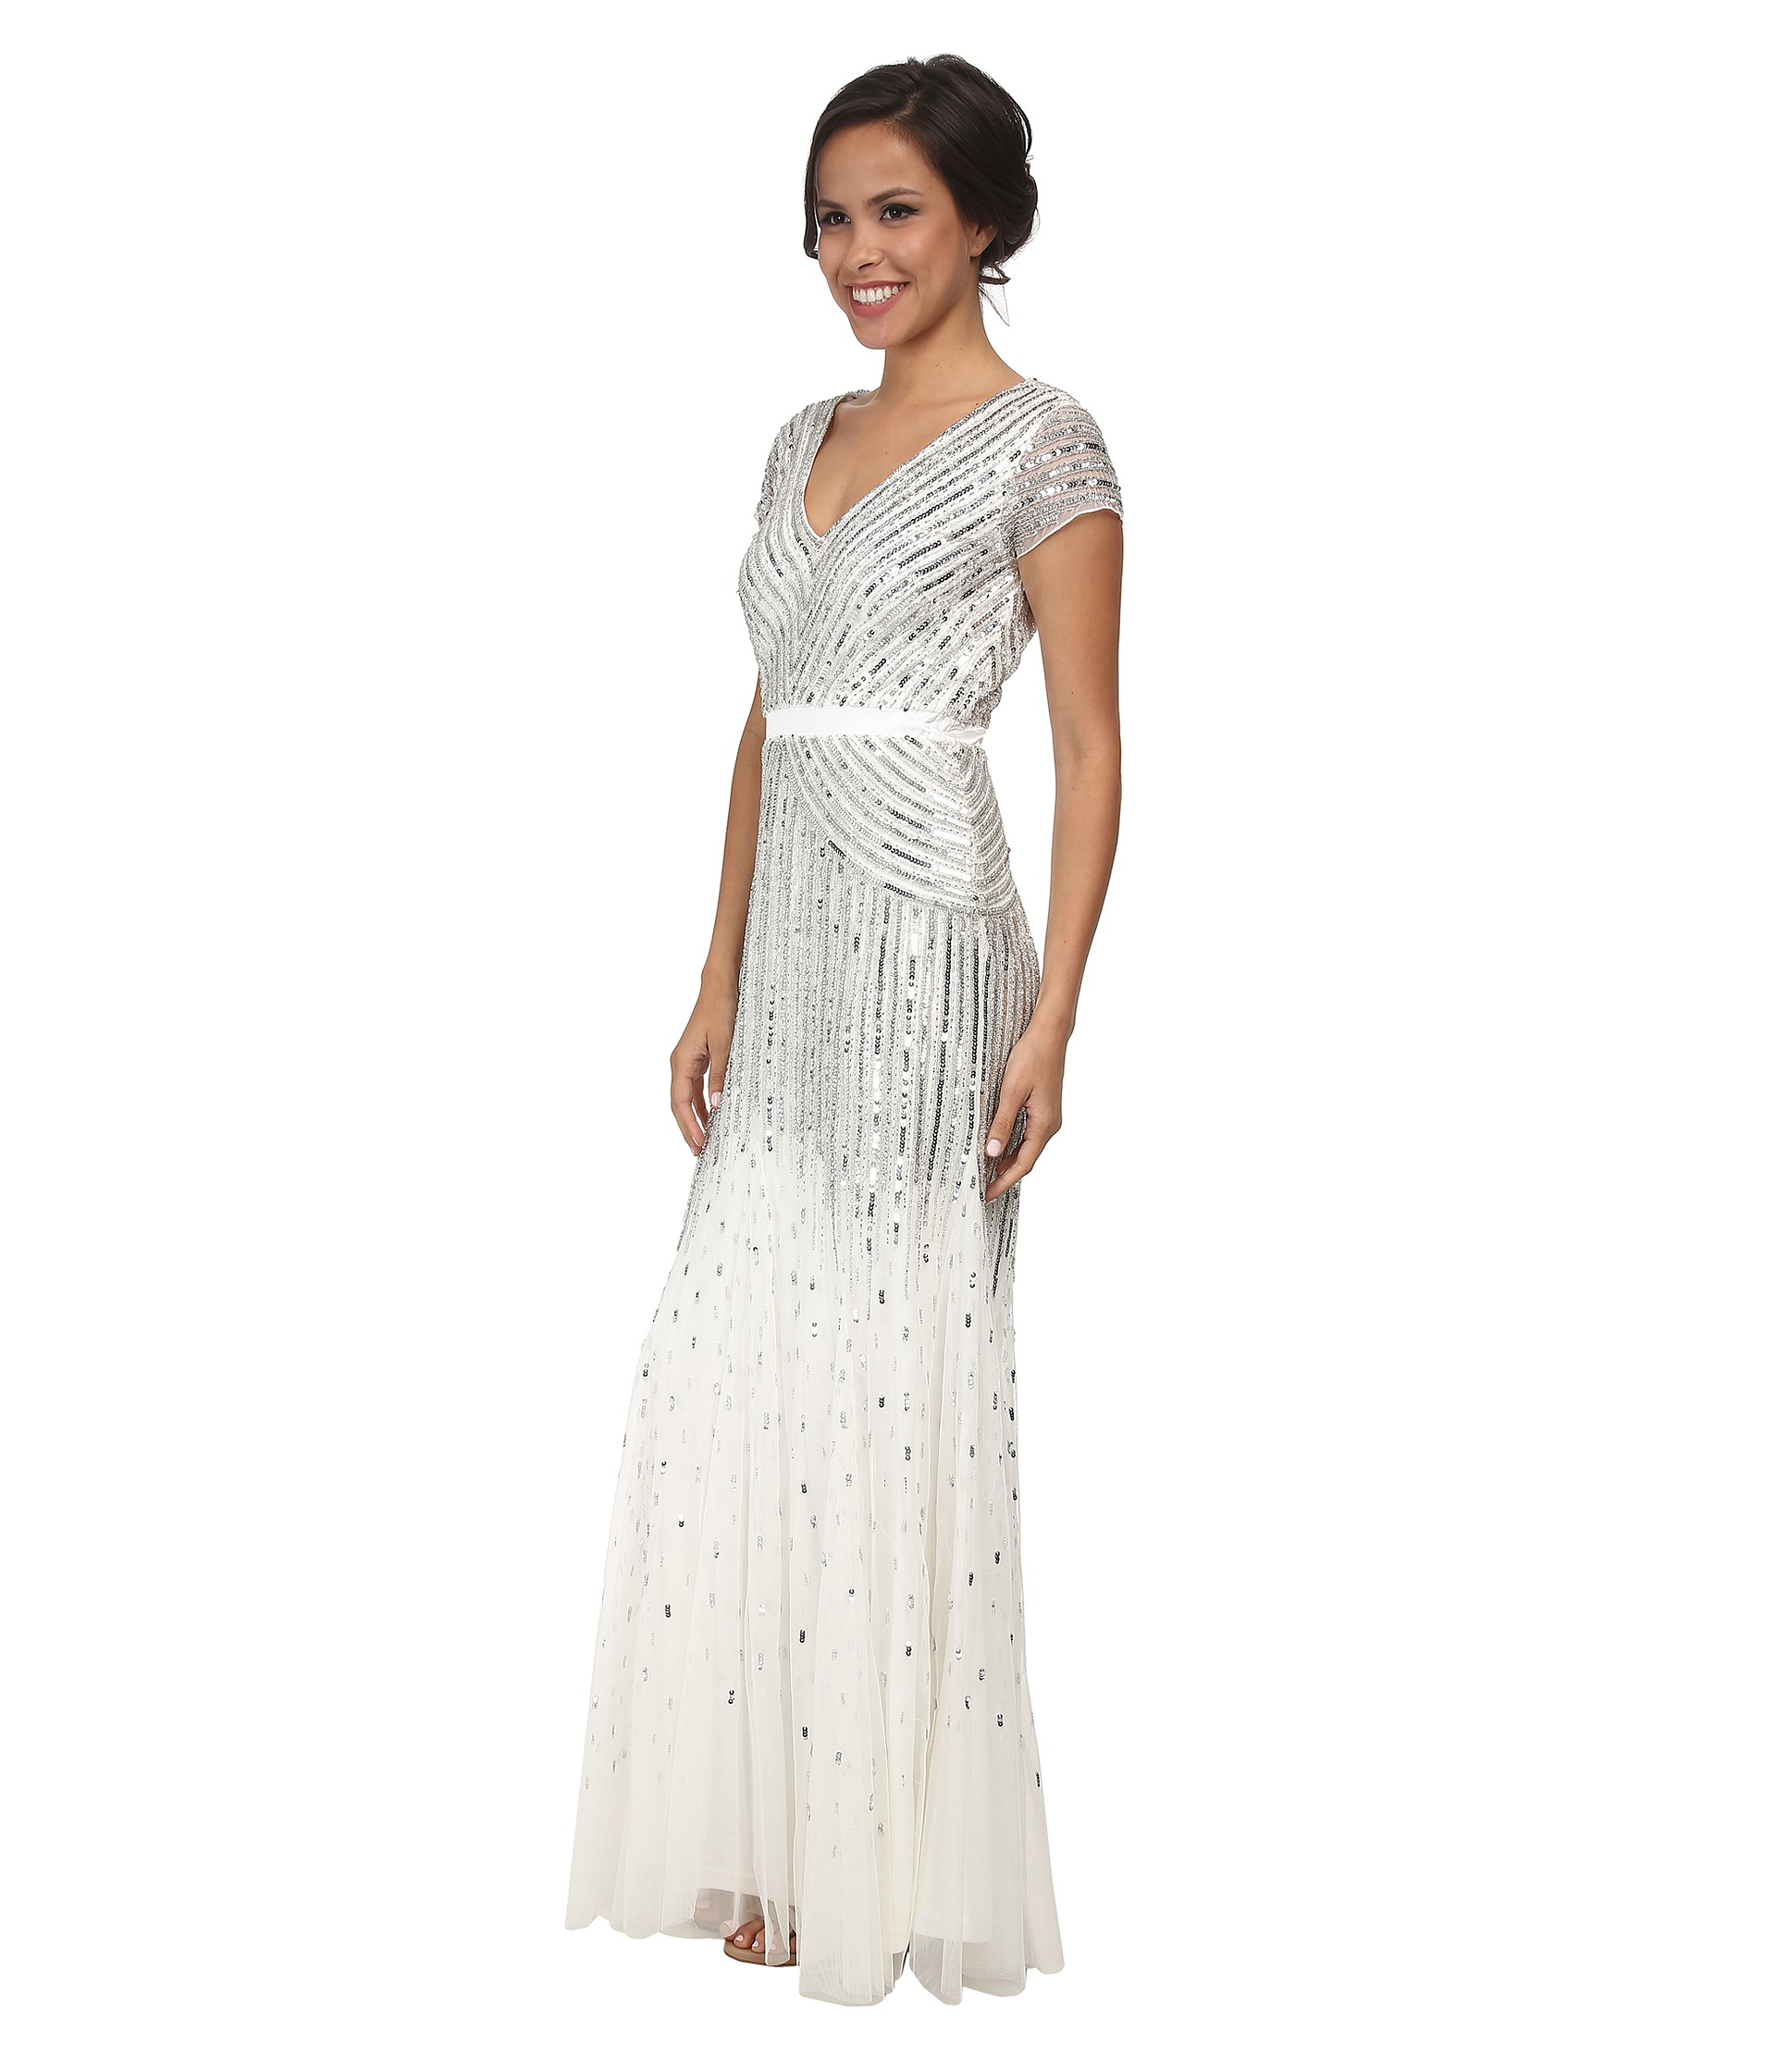 Lyst - Adrianna Papell Cap Sleeve Beaded Gown in Metallic